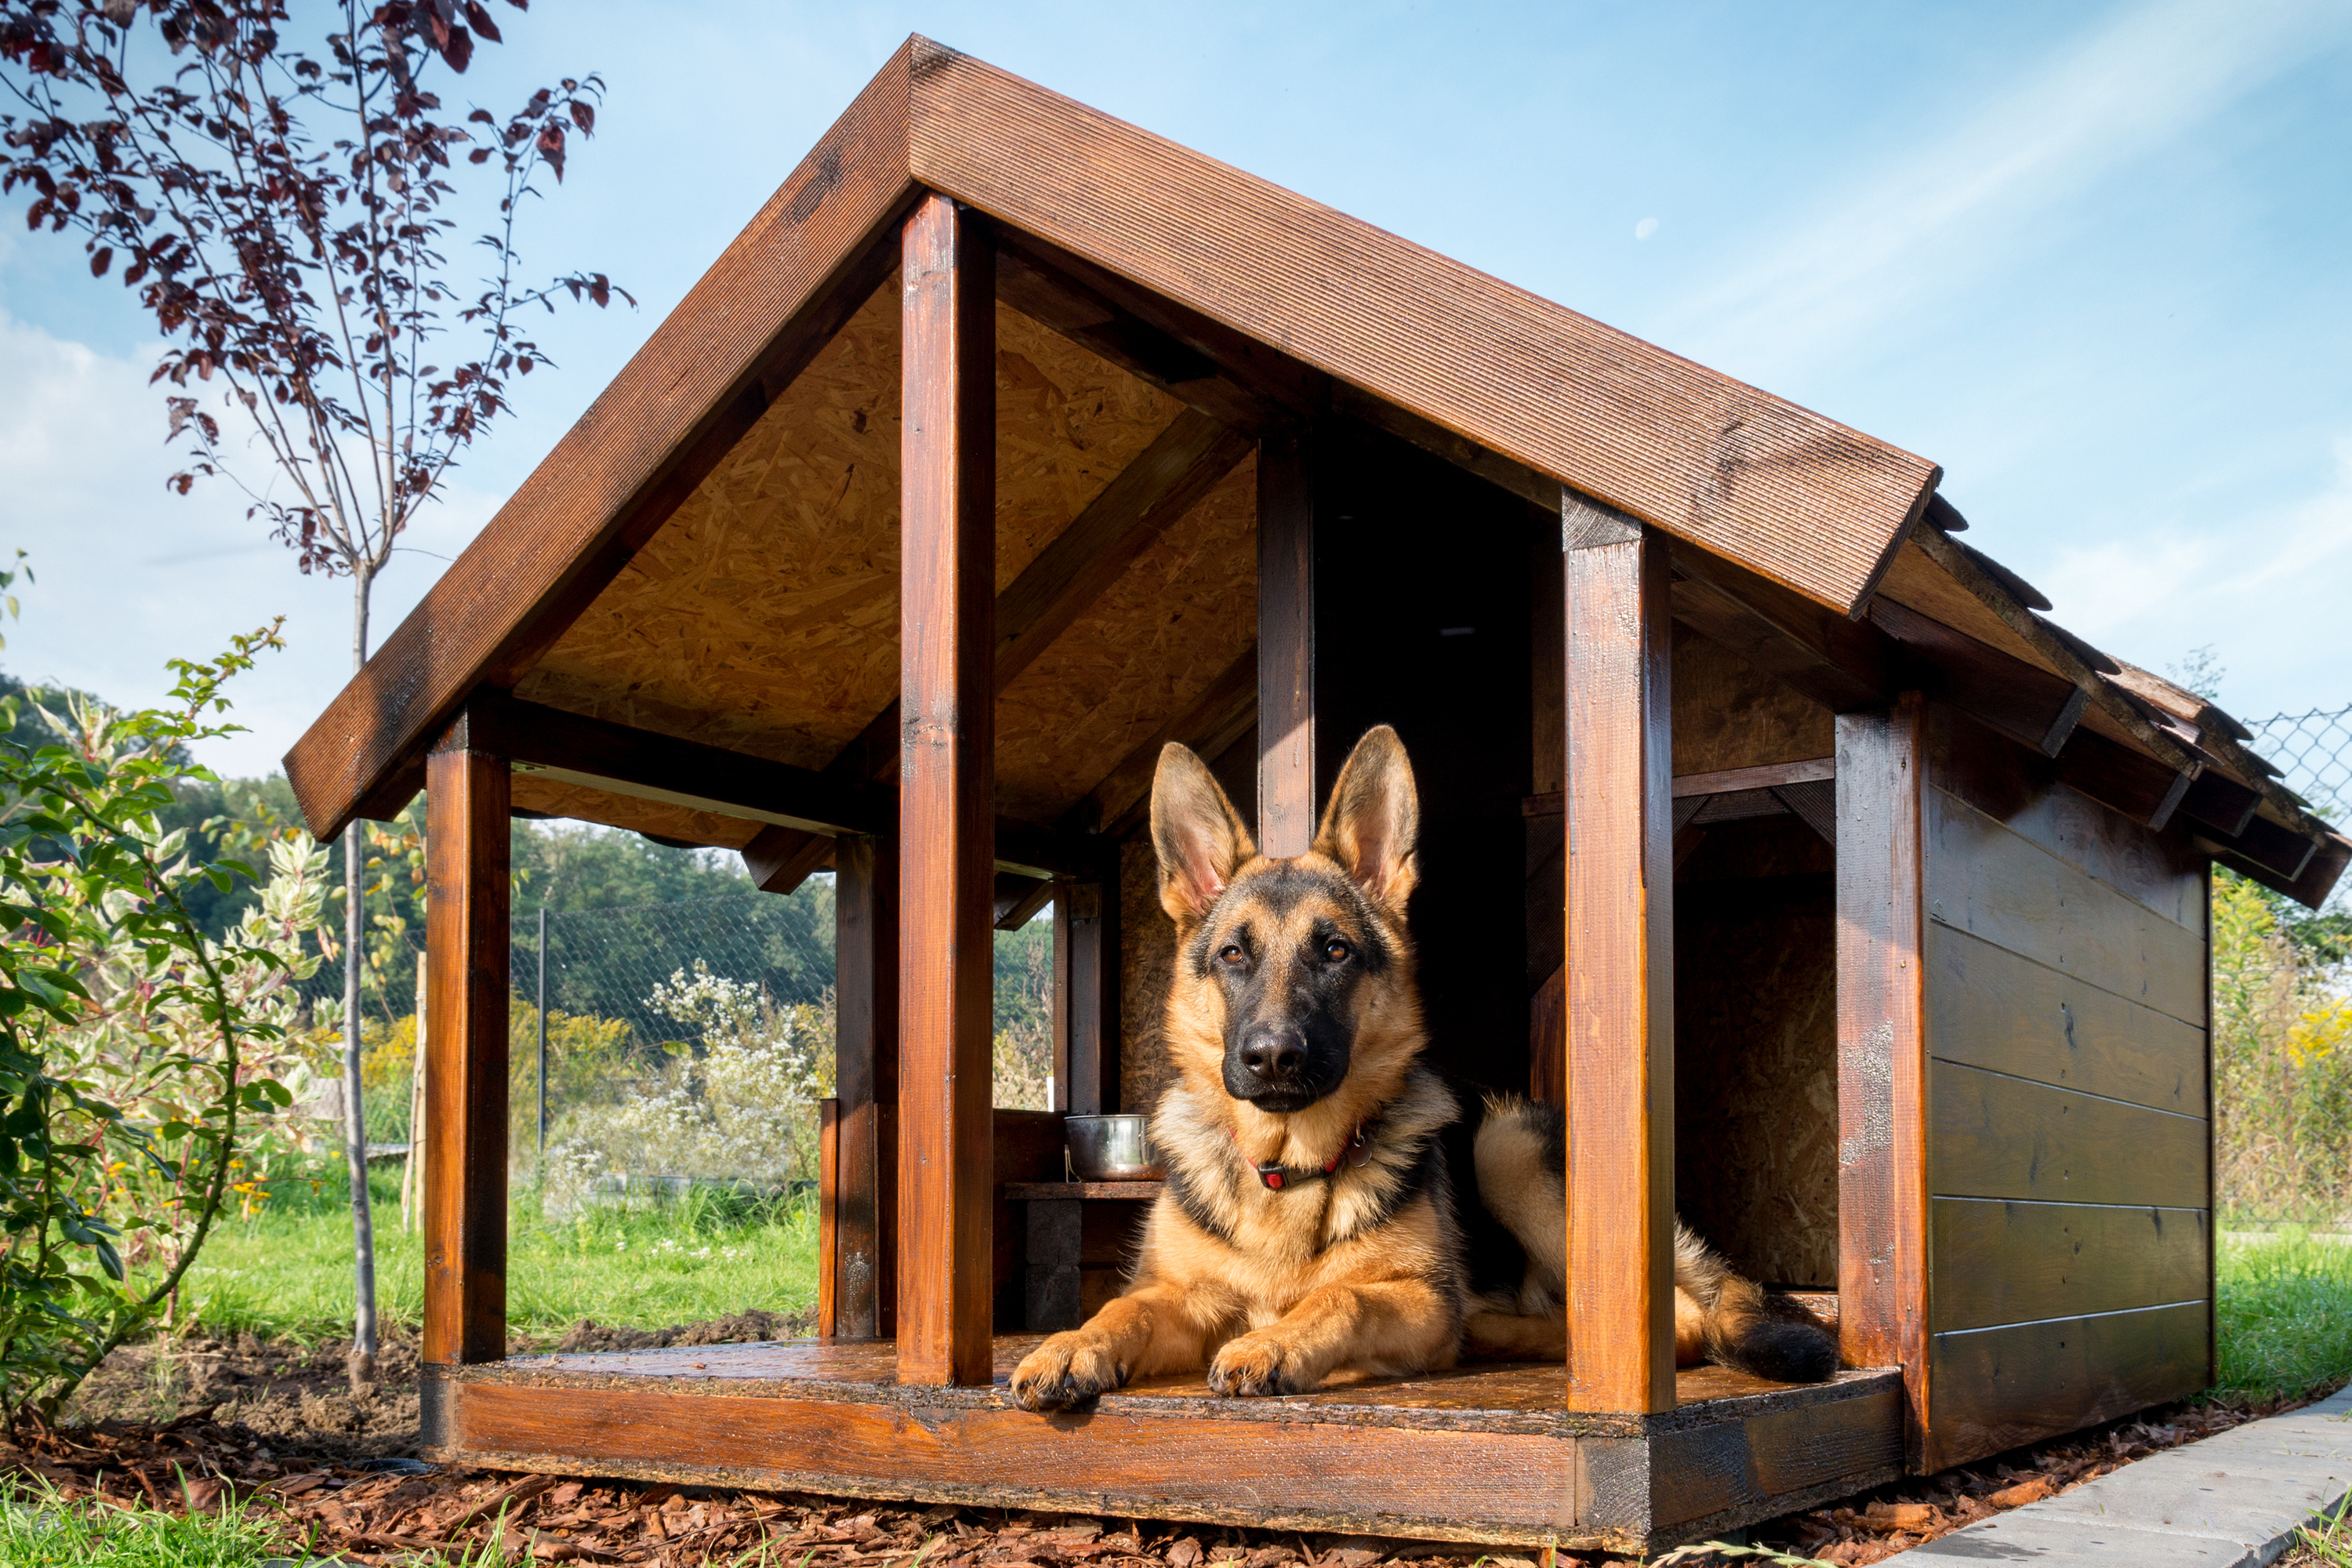 DIY dog house | DIY | dog house | DIY project | easy DIY dog house | dog house tutorial | how to